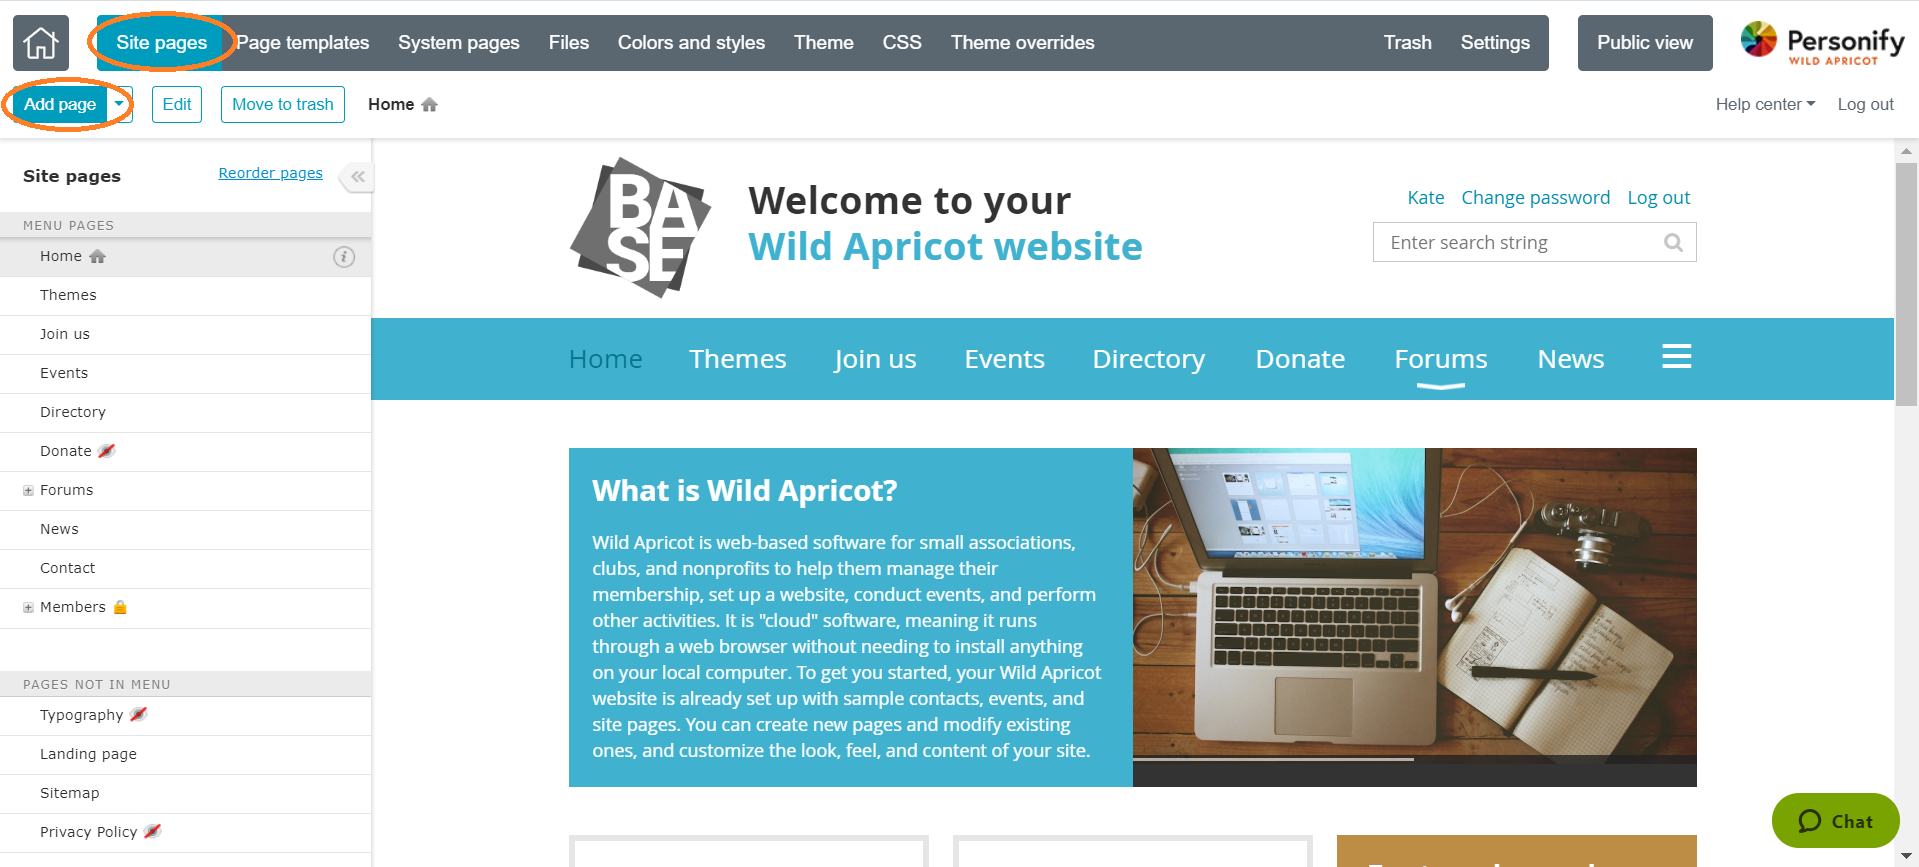 Subscription website add site page